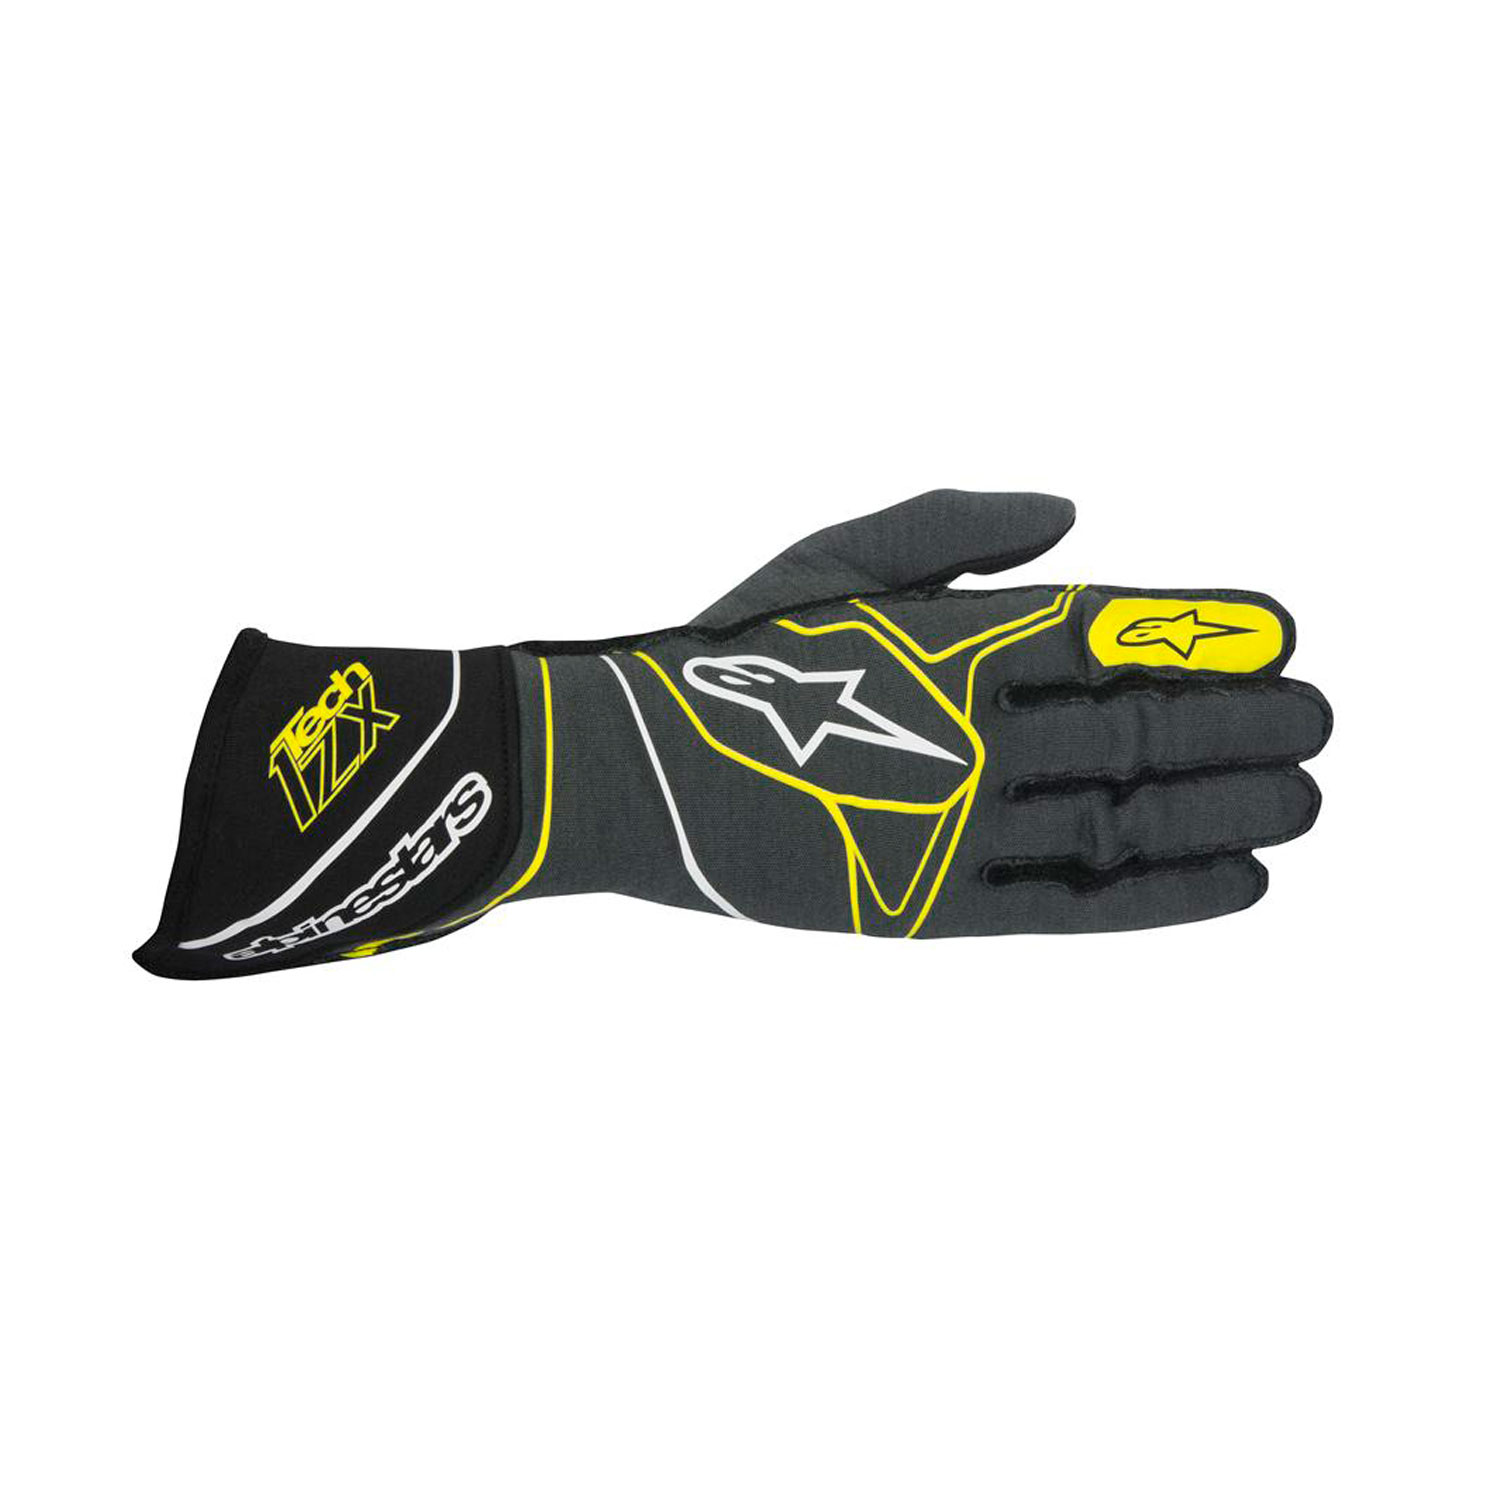 b0bc308d13eb 2017 Alpinestars Italy Tech 1-ZX Racing Gloves Grey Black Yellow (with